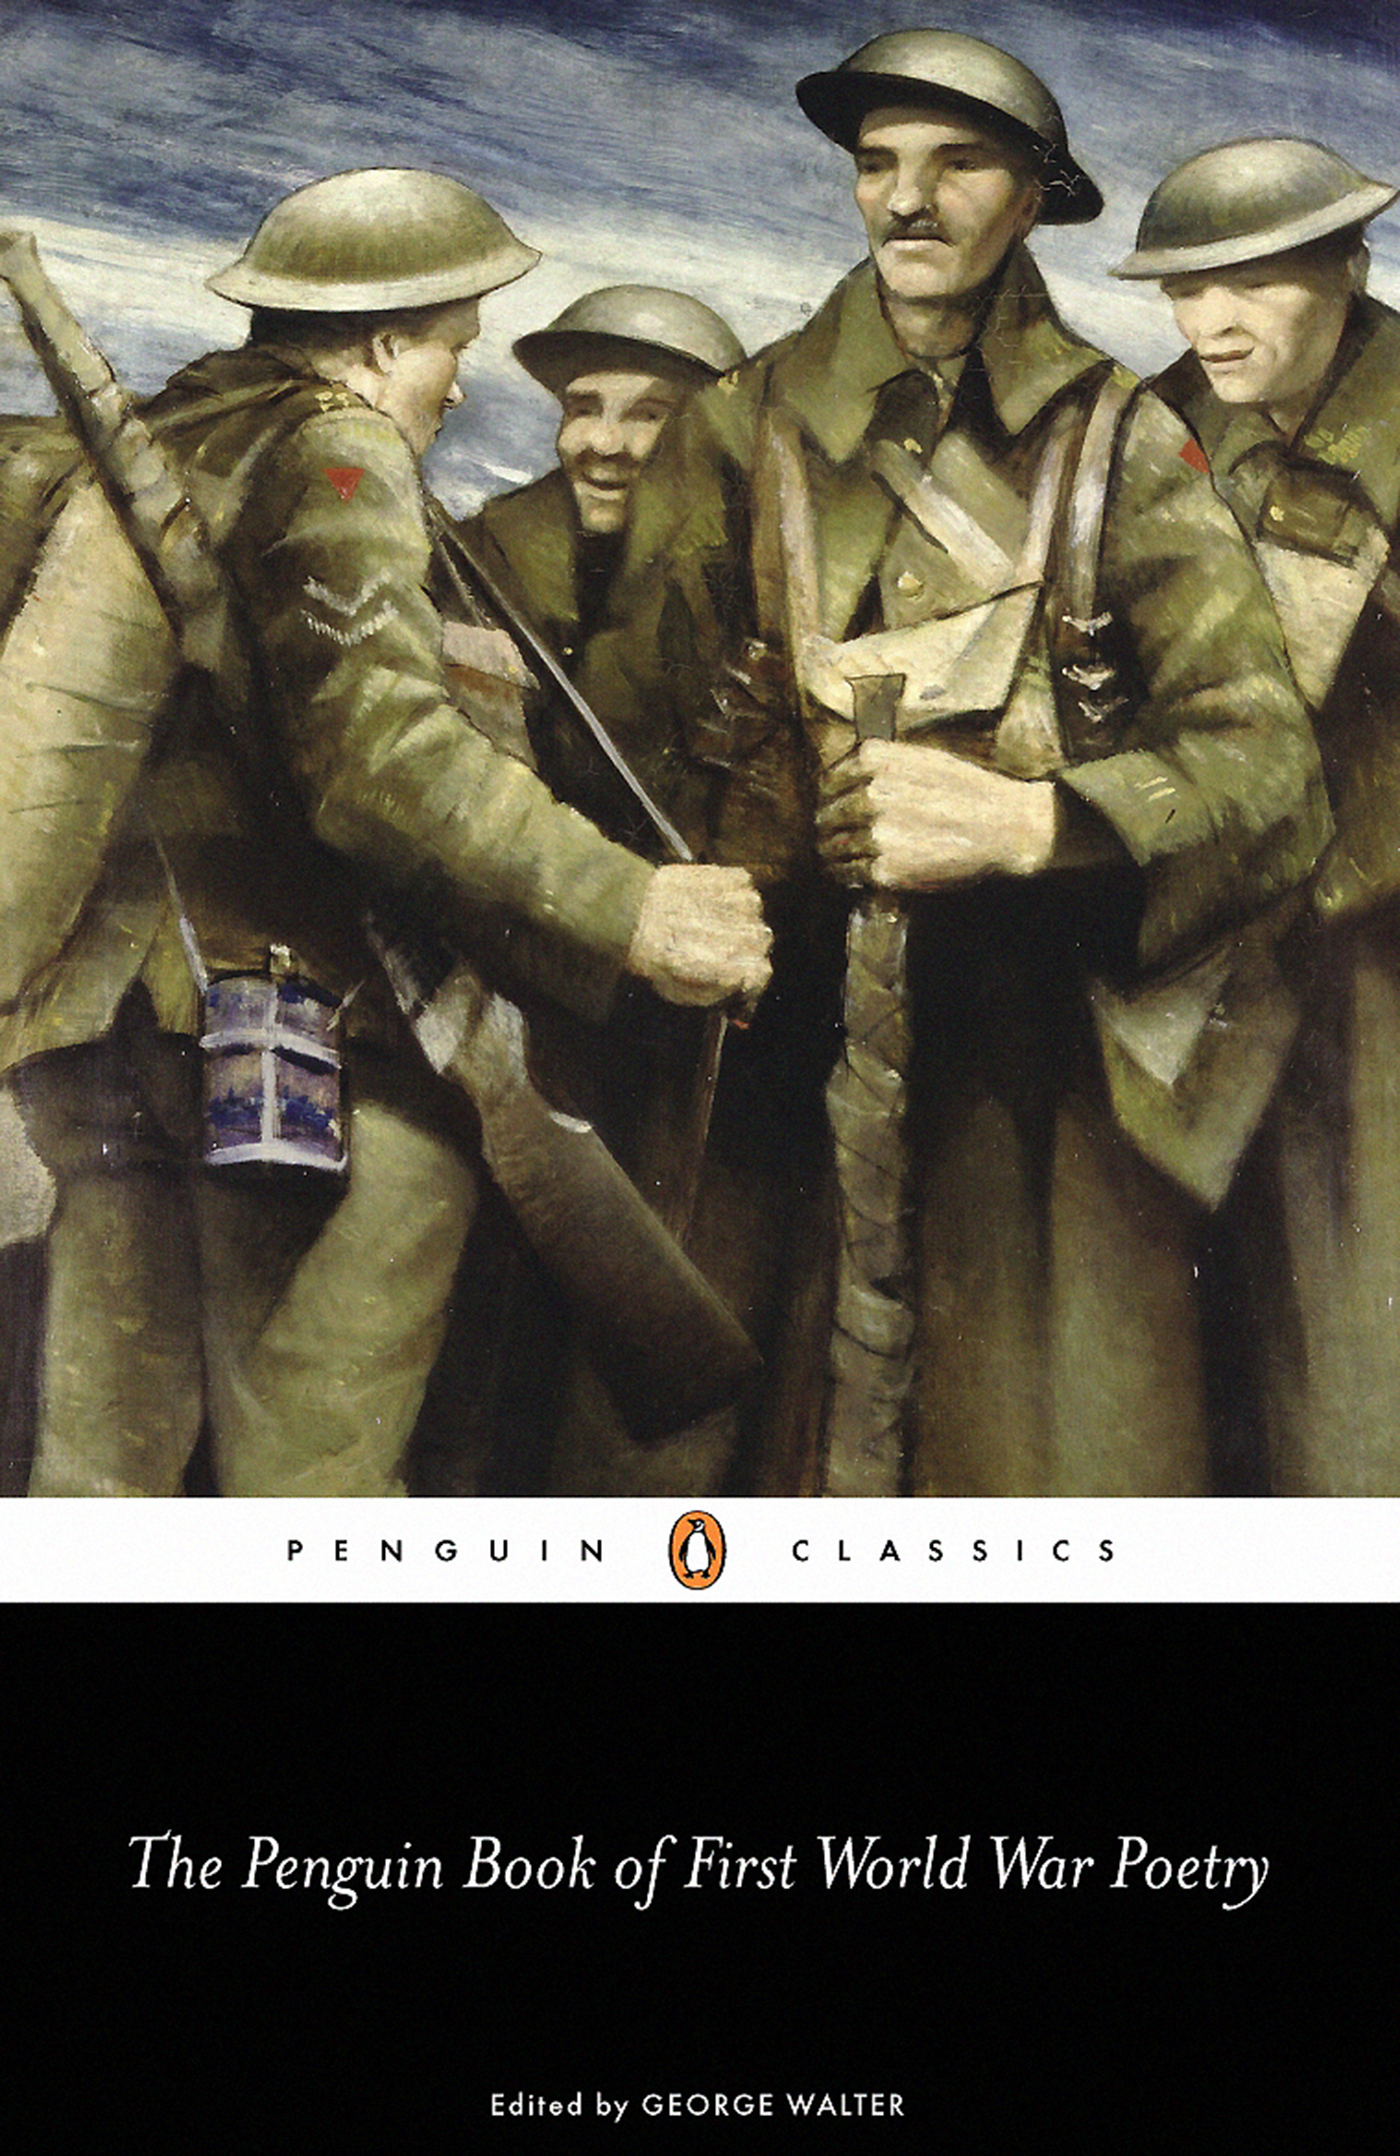 The Penguin Book of First World War Poetry